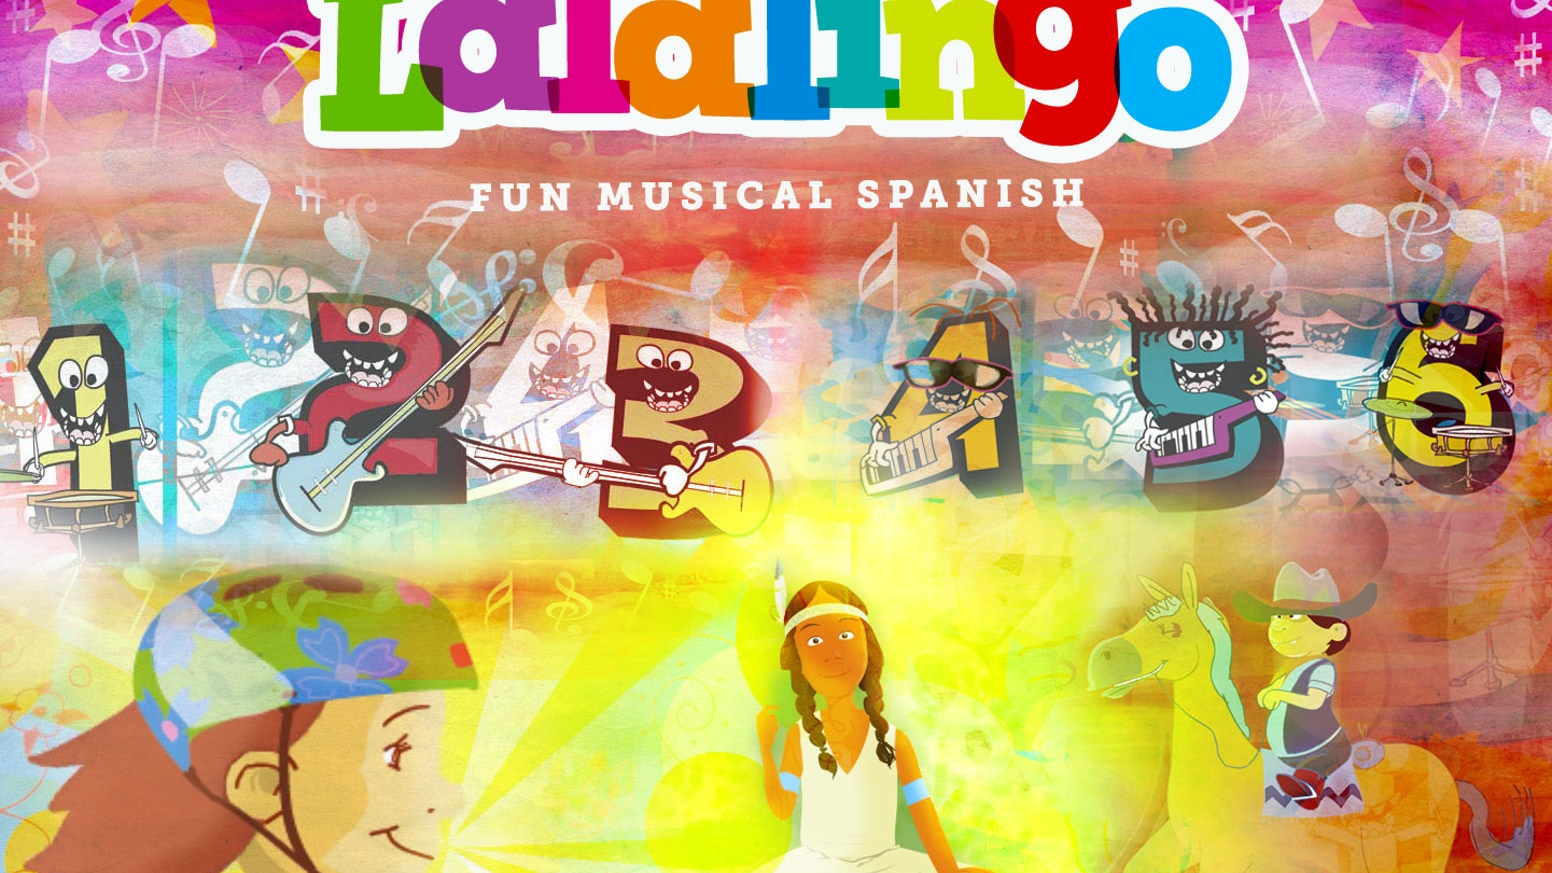 Lalalingo! animated music videos to learn Spanish  by Cesar